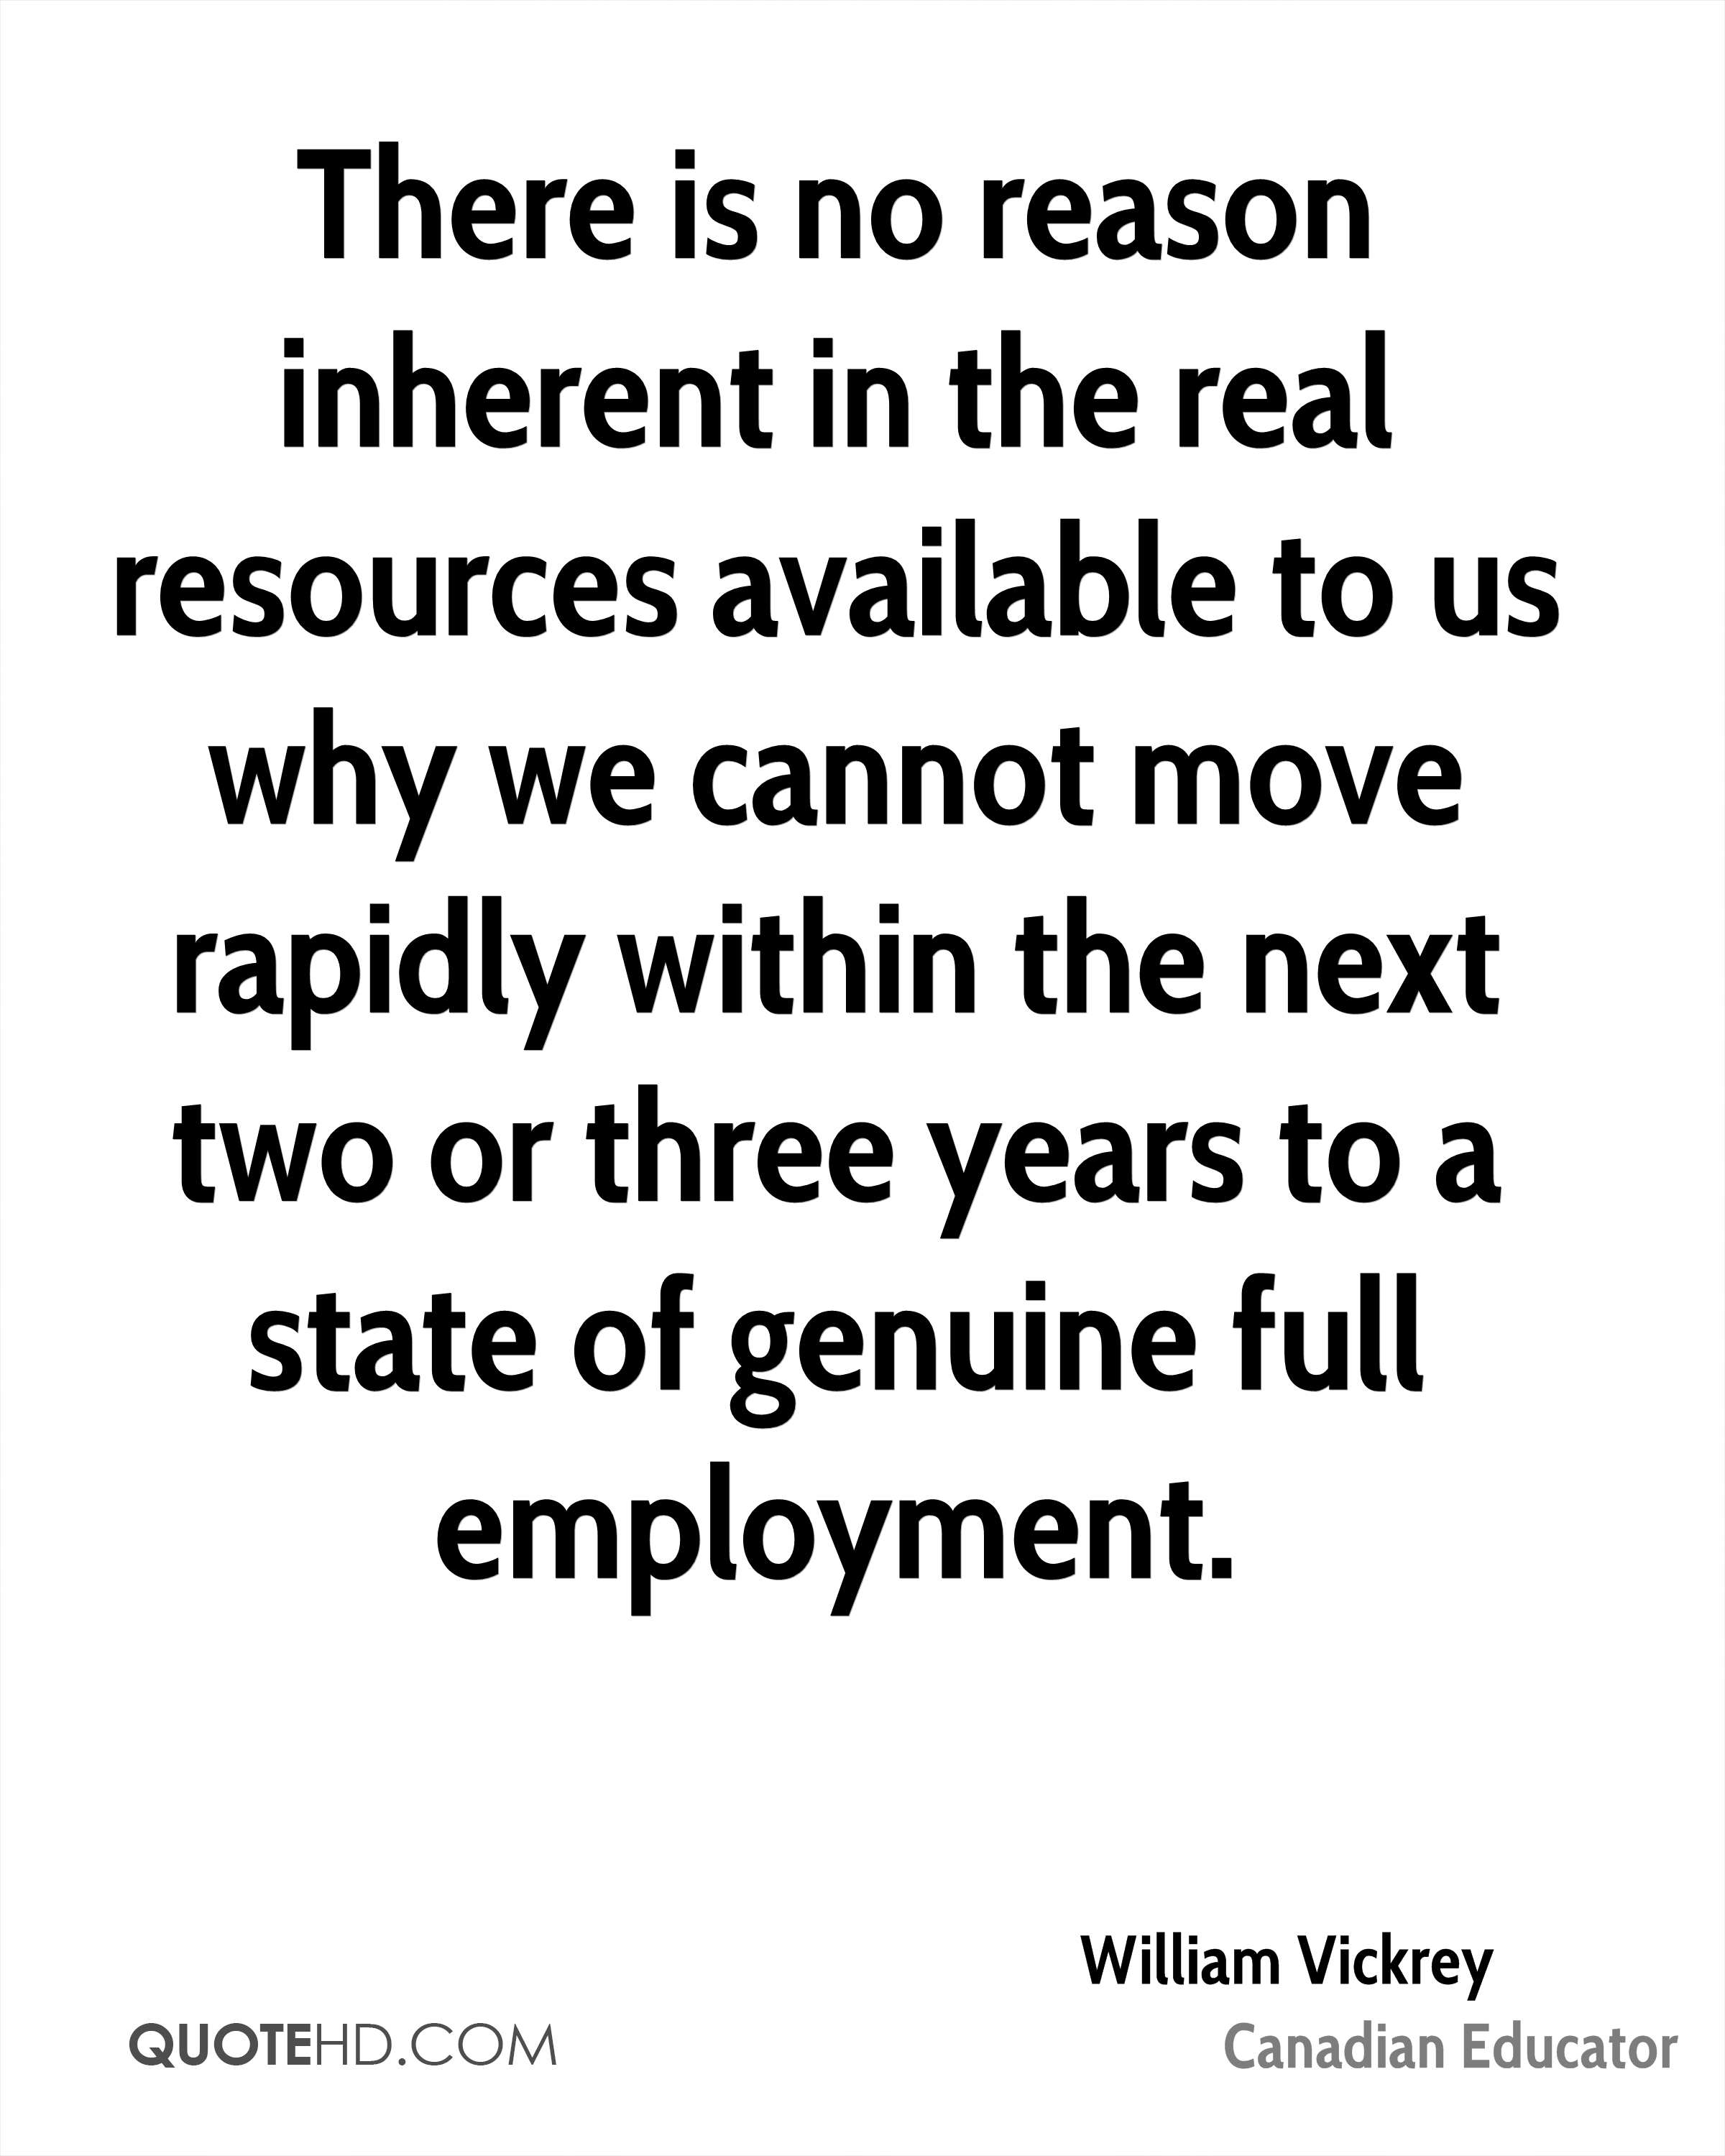 There is no reason inherent in the real resources available to us why we cannot move rapidly within the next two or three years to a state of genuine full employment.